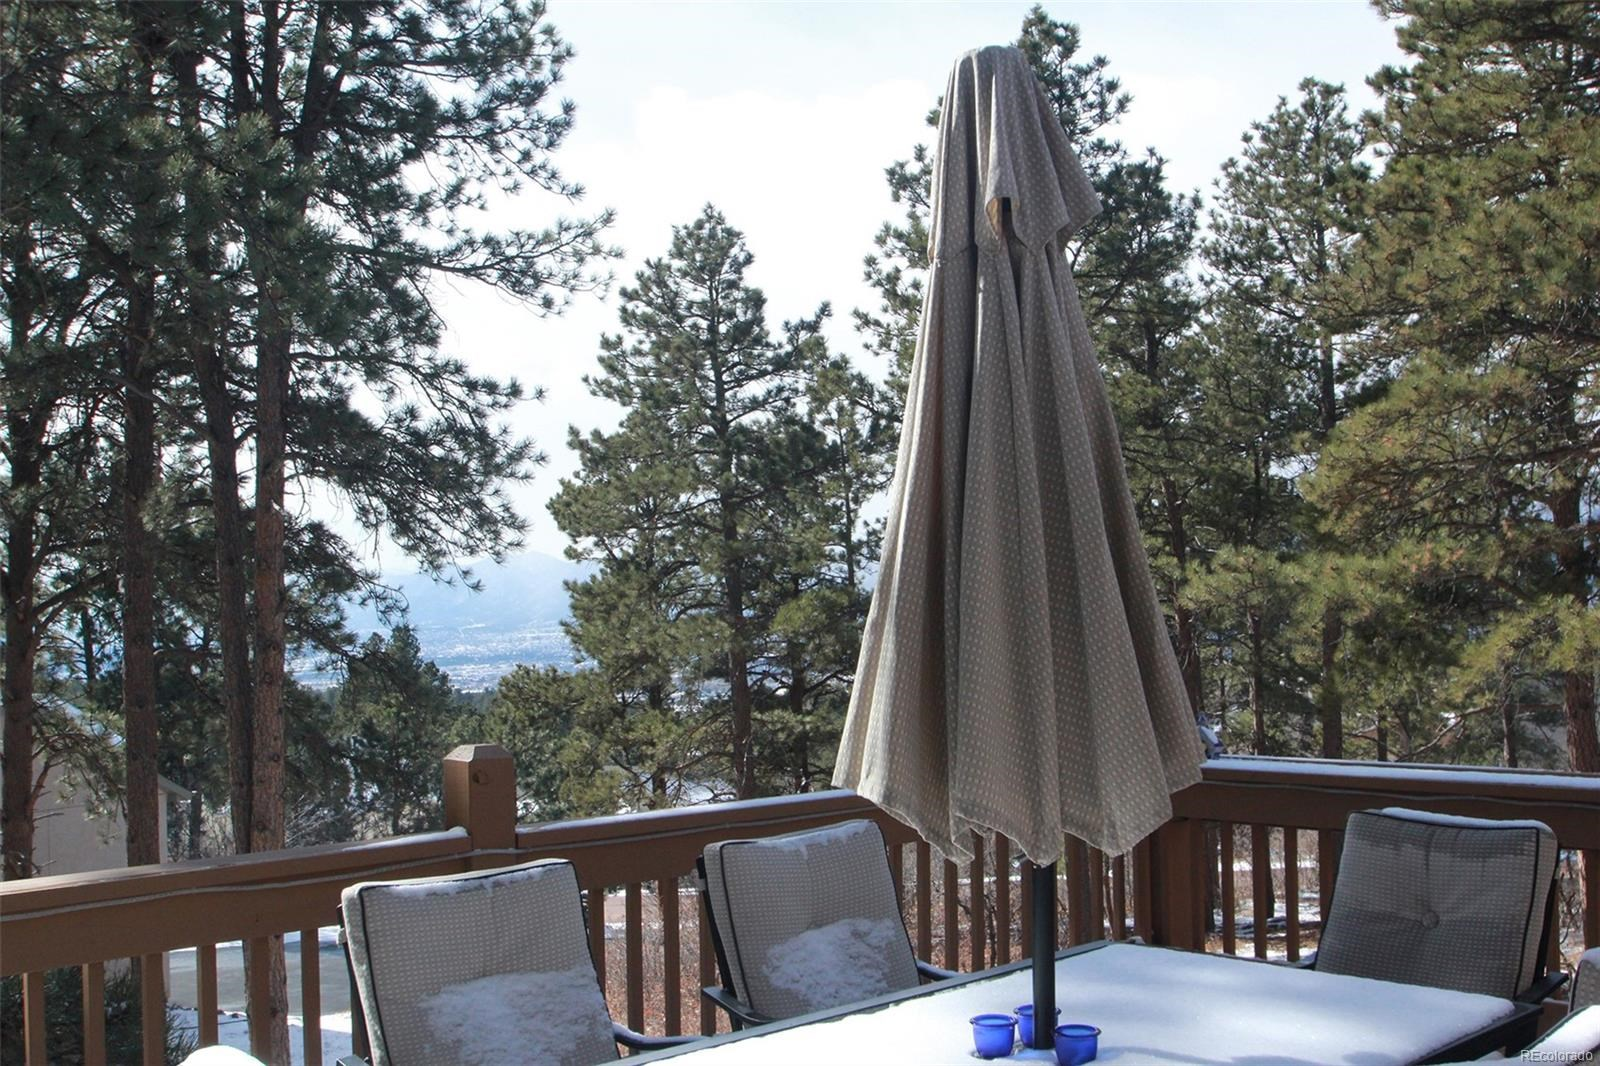 MLS# 3001328 - 26 - 1585 Capadaro Court, Monument, CO 80132